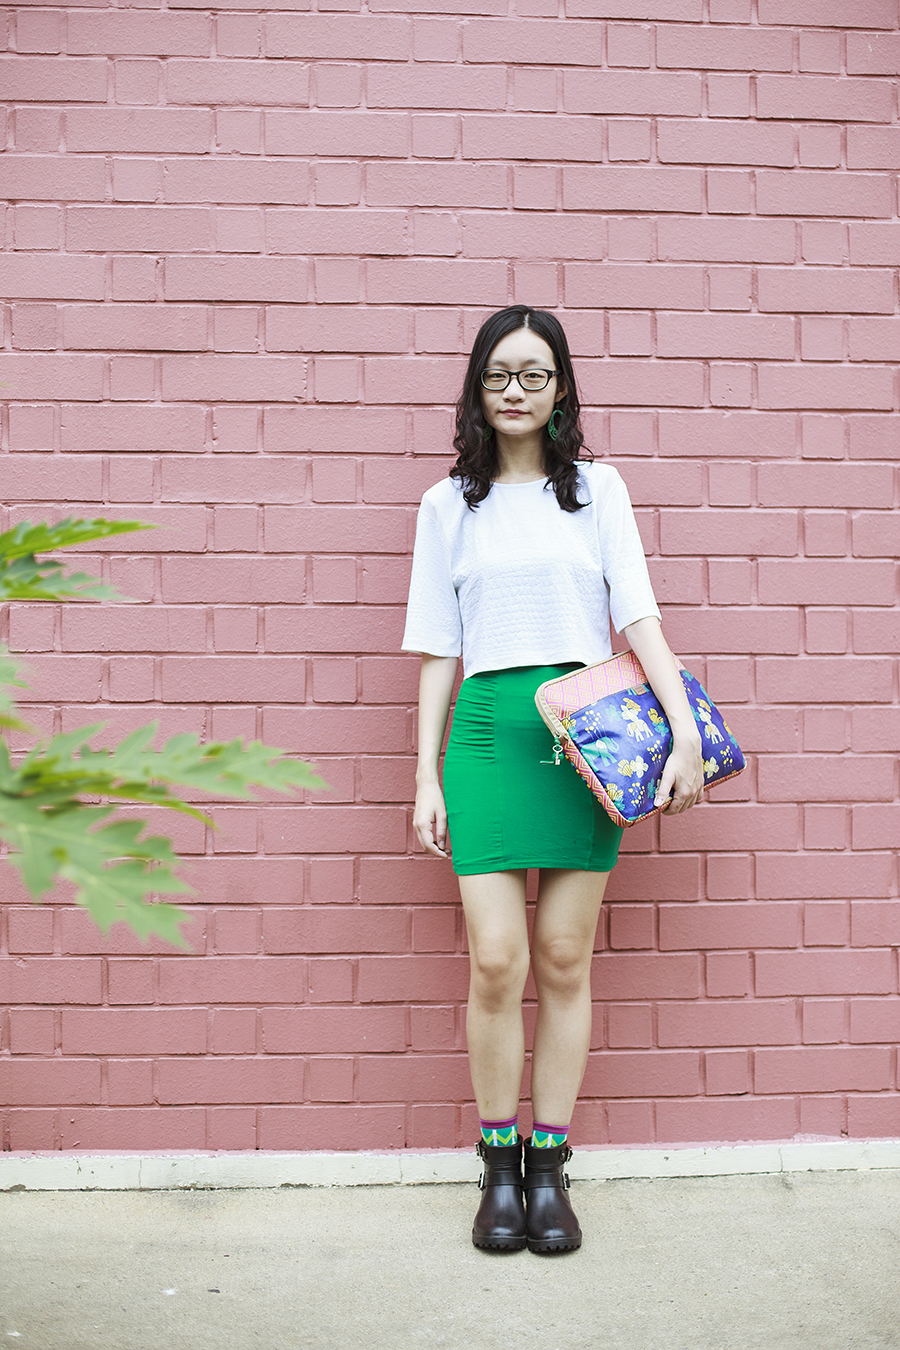 Bec & Bridge white textured crop top c/o Shopbop, Forever 21 green bandage skirt, Gap black frame glasses, Ggorangnae crocodile socks from Korea, Forever 21 faux jade dangle earrings, Mac pink lipstick, Fossil tribal print laptop sleeve.